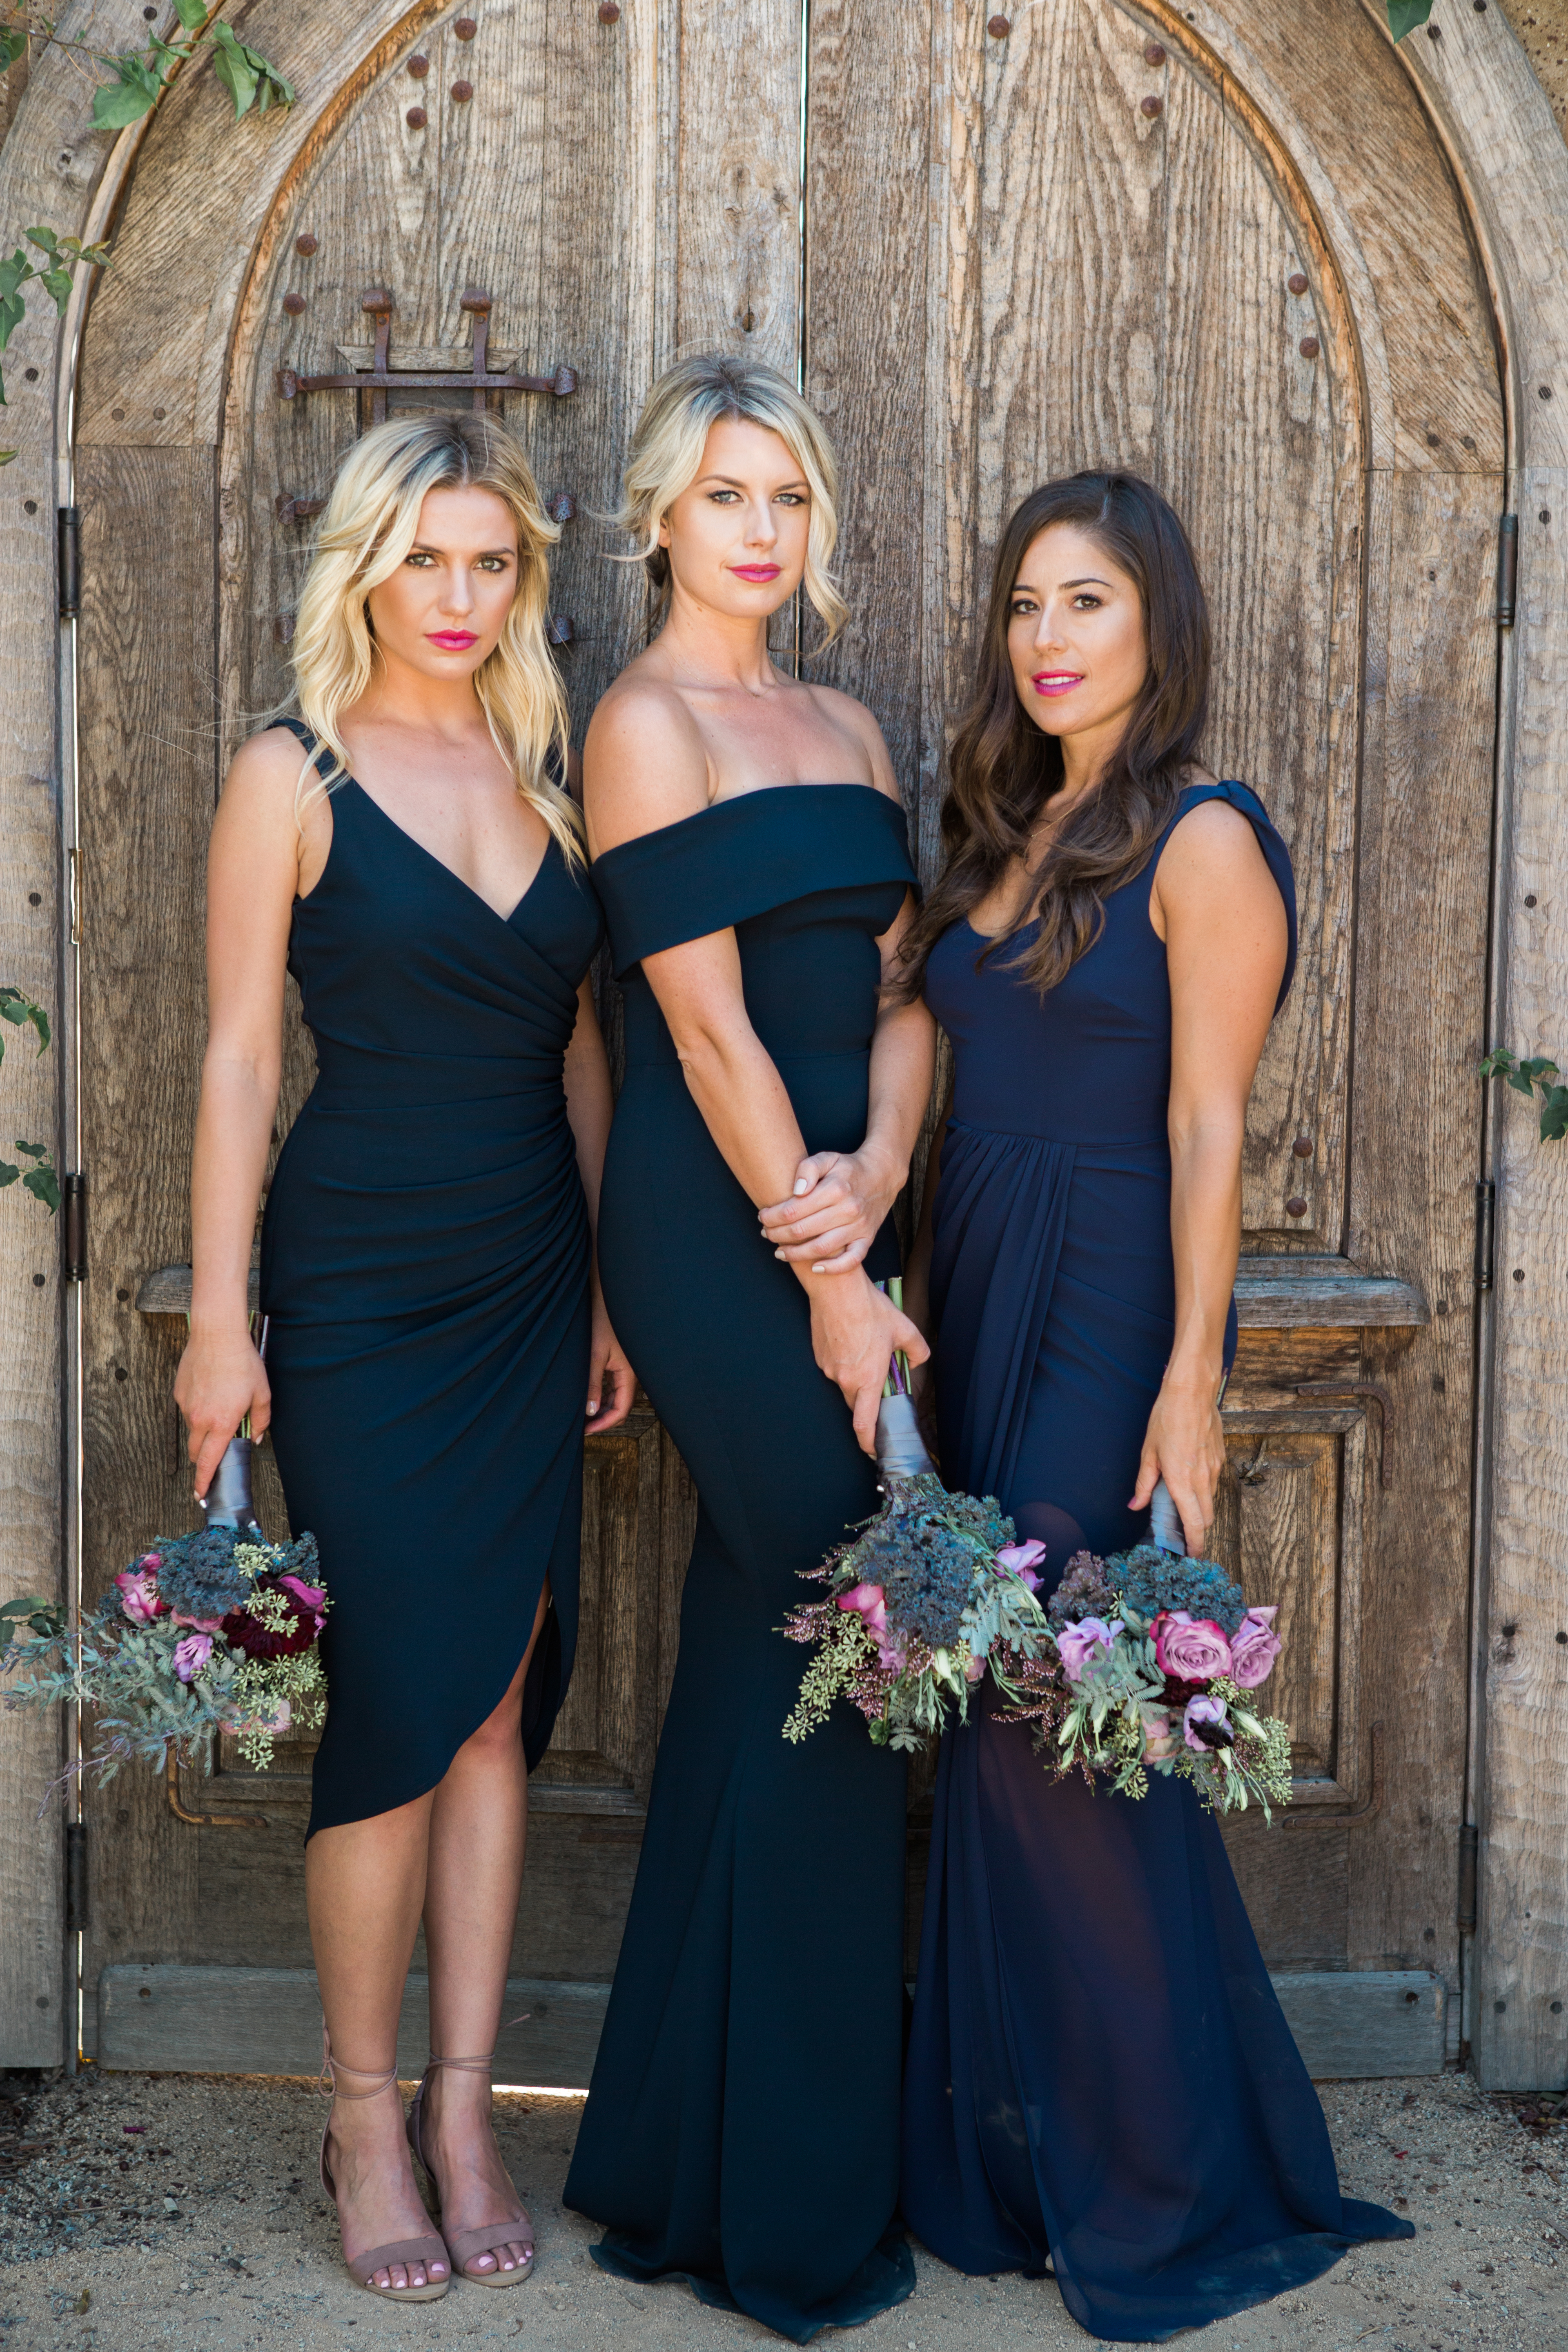 Its here meet katie may bella bridesmaids styles l to r persephony legacy and athena in navy ombrellifo Gallery